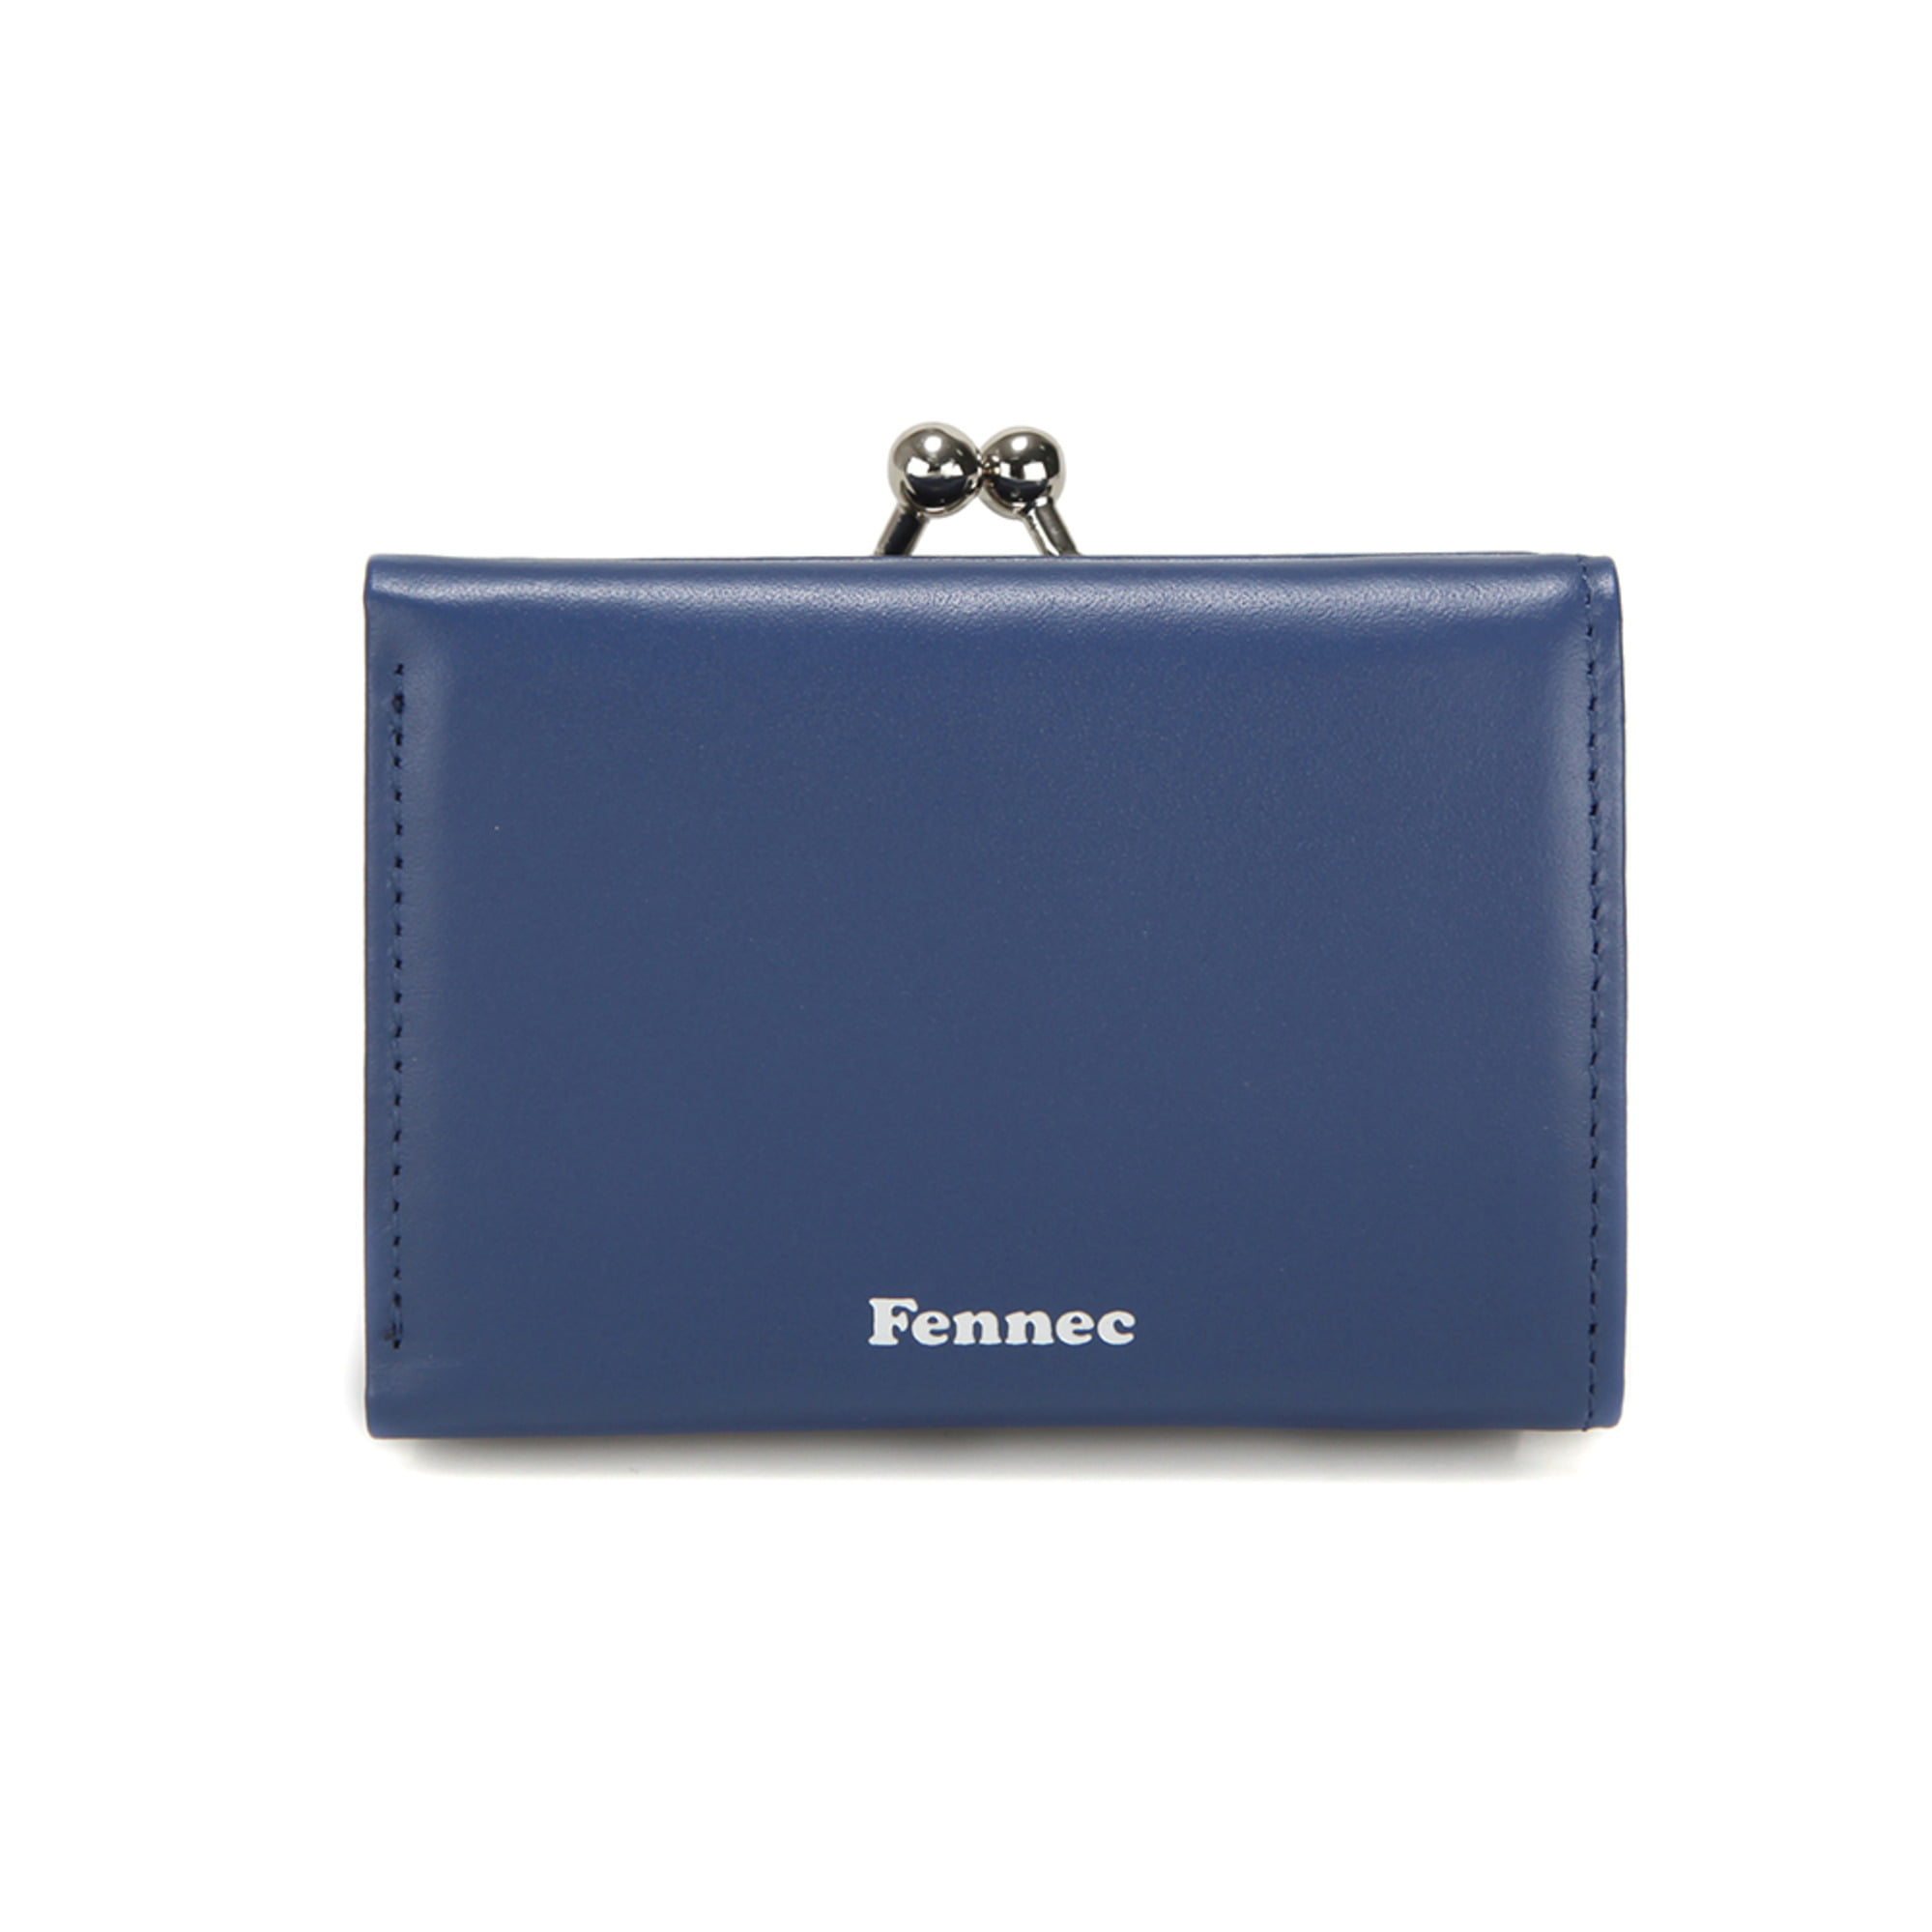 [DISCONTINUE] FRAME TRIPLE WALLET - DUSTY BLUE